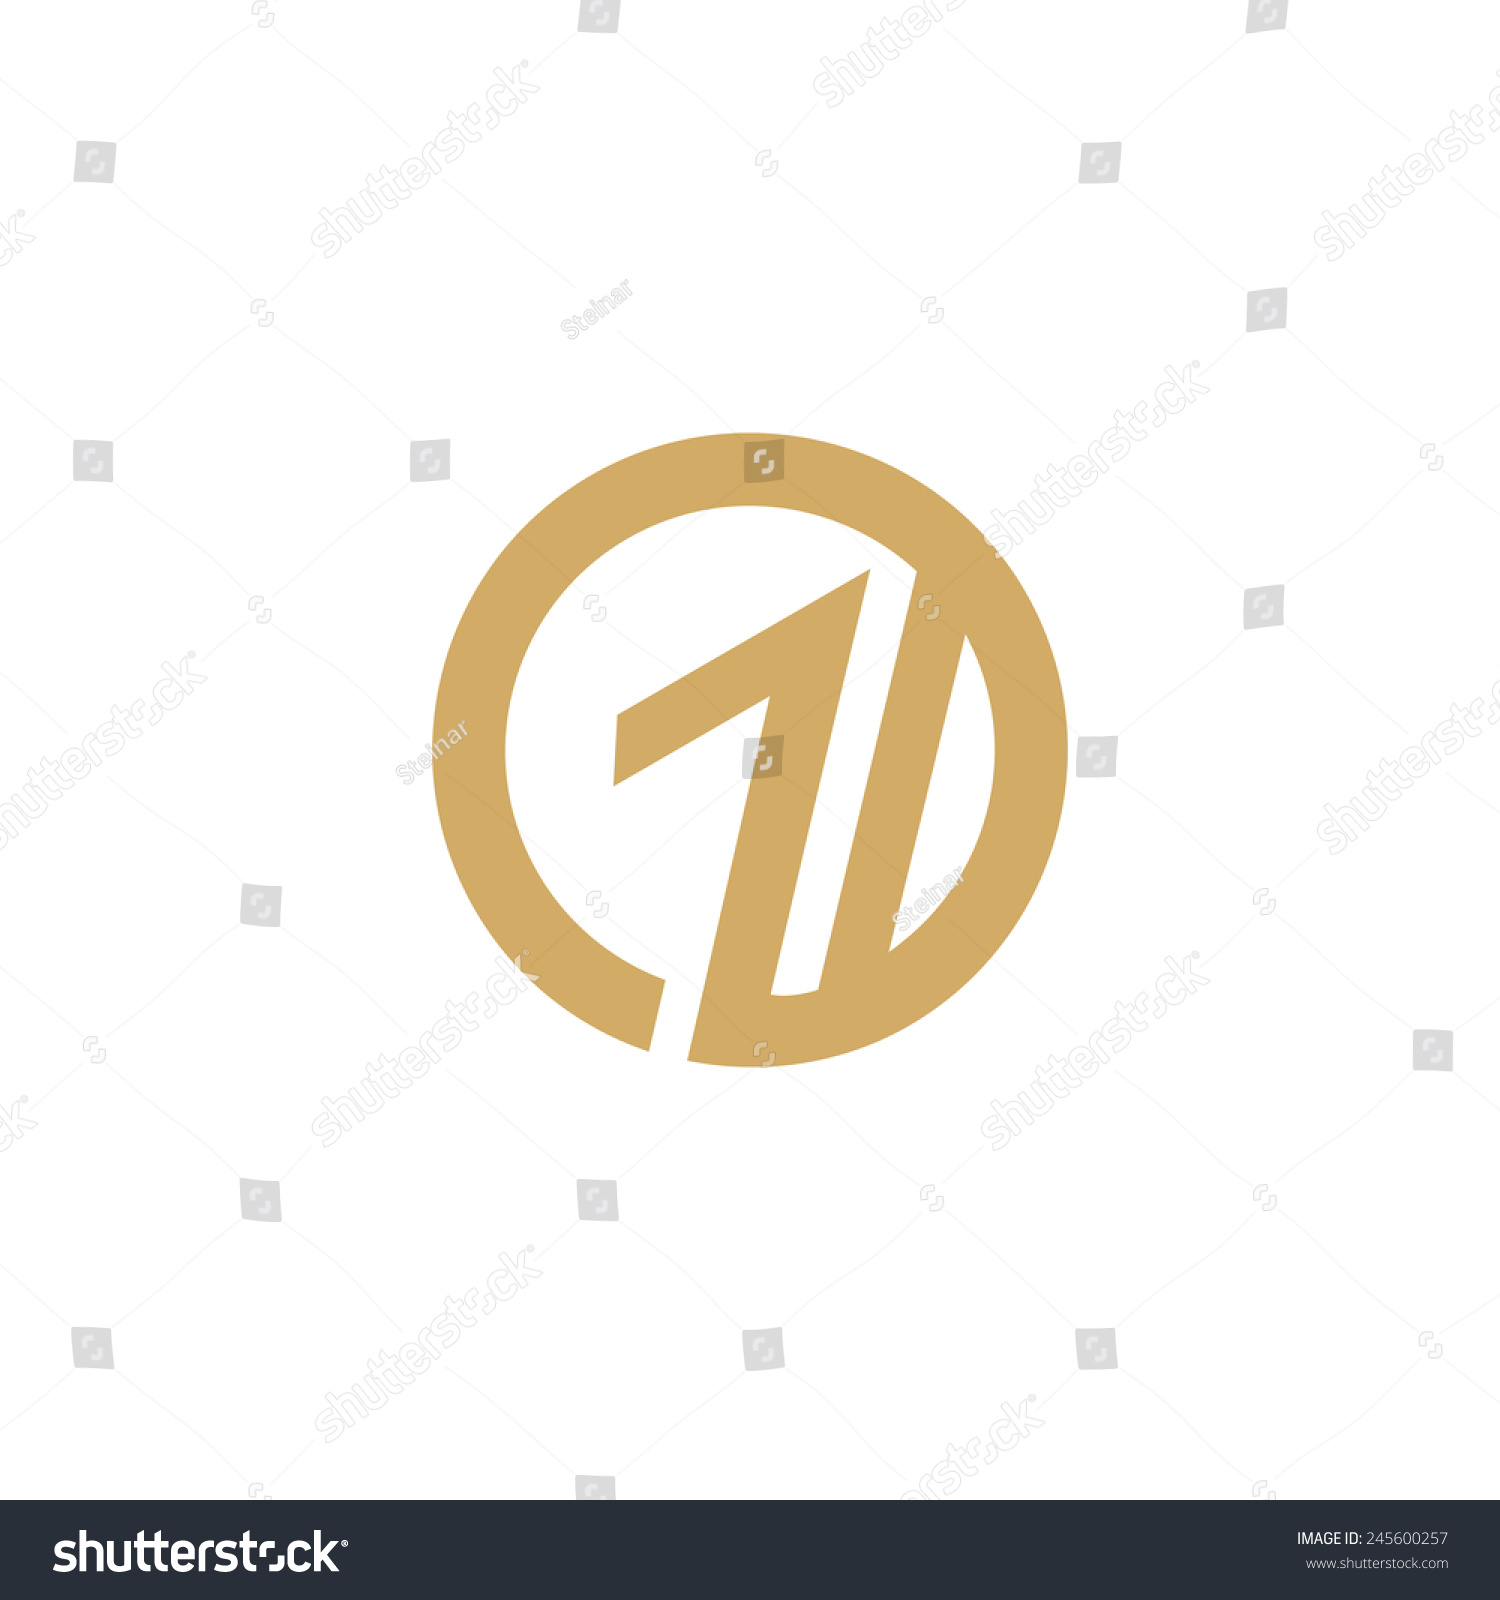 Number Sign Vector Wiring Diagrams Diagramofseriescircuitforkidsjpg One Branding Identity Corporate Logo Design House Exit